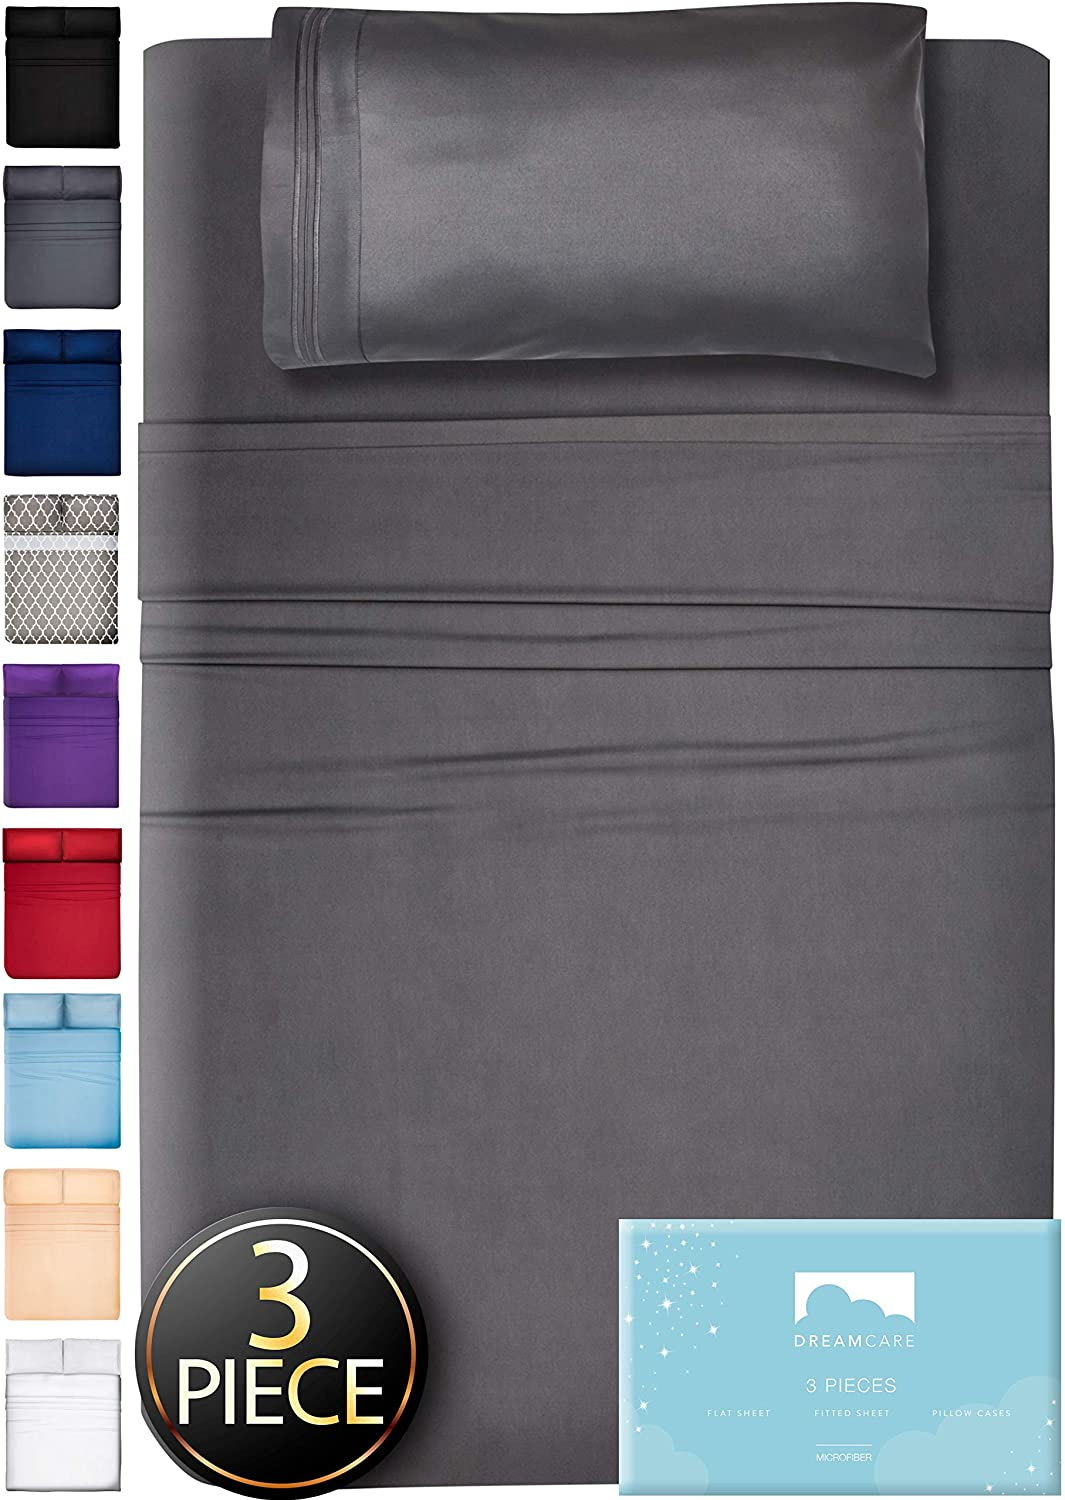 DreamCare Twin XL Sheets XL Twin Sheet Set Twin XL Fitted Sheet 3 Piece Extra Long Twin Sheets XL Twin Fitted Sheet Twin Extra Long Sheet Set Twin XL Bedding Twin XL Fitted Sheets XL Twin Sheets Gray